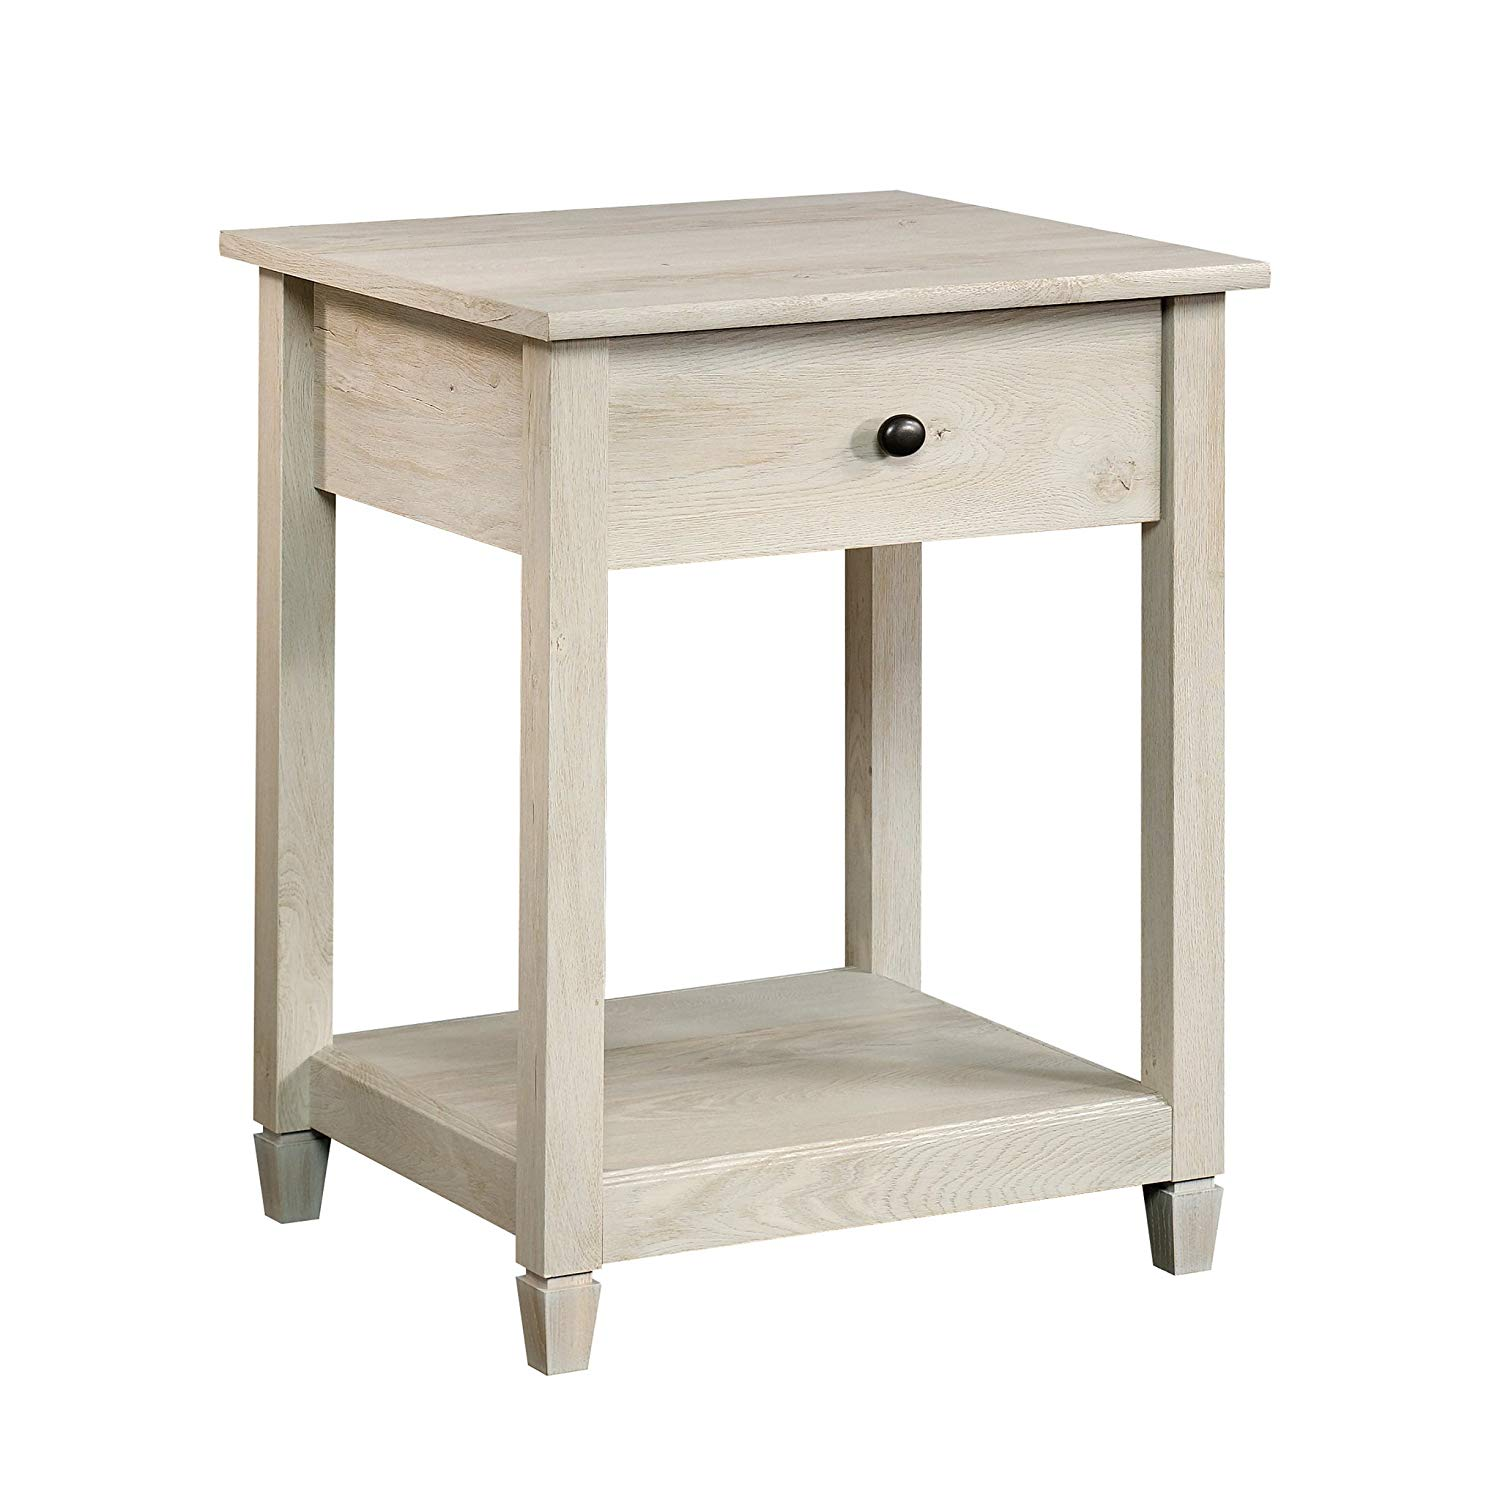 sauder edge water side table accent with barn door chalked chestnut finish kitchen dining slim sofa west elm chair allen cocktail bulk tablecloths for weddings patio furniture